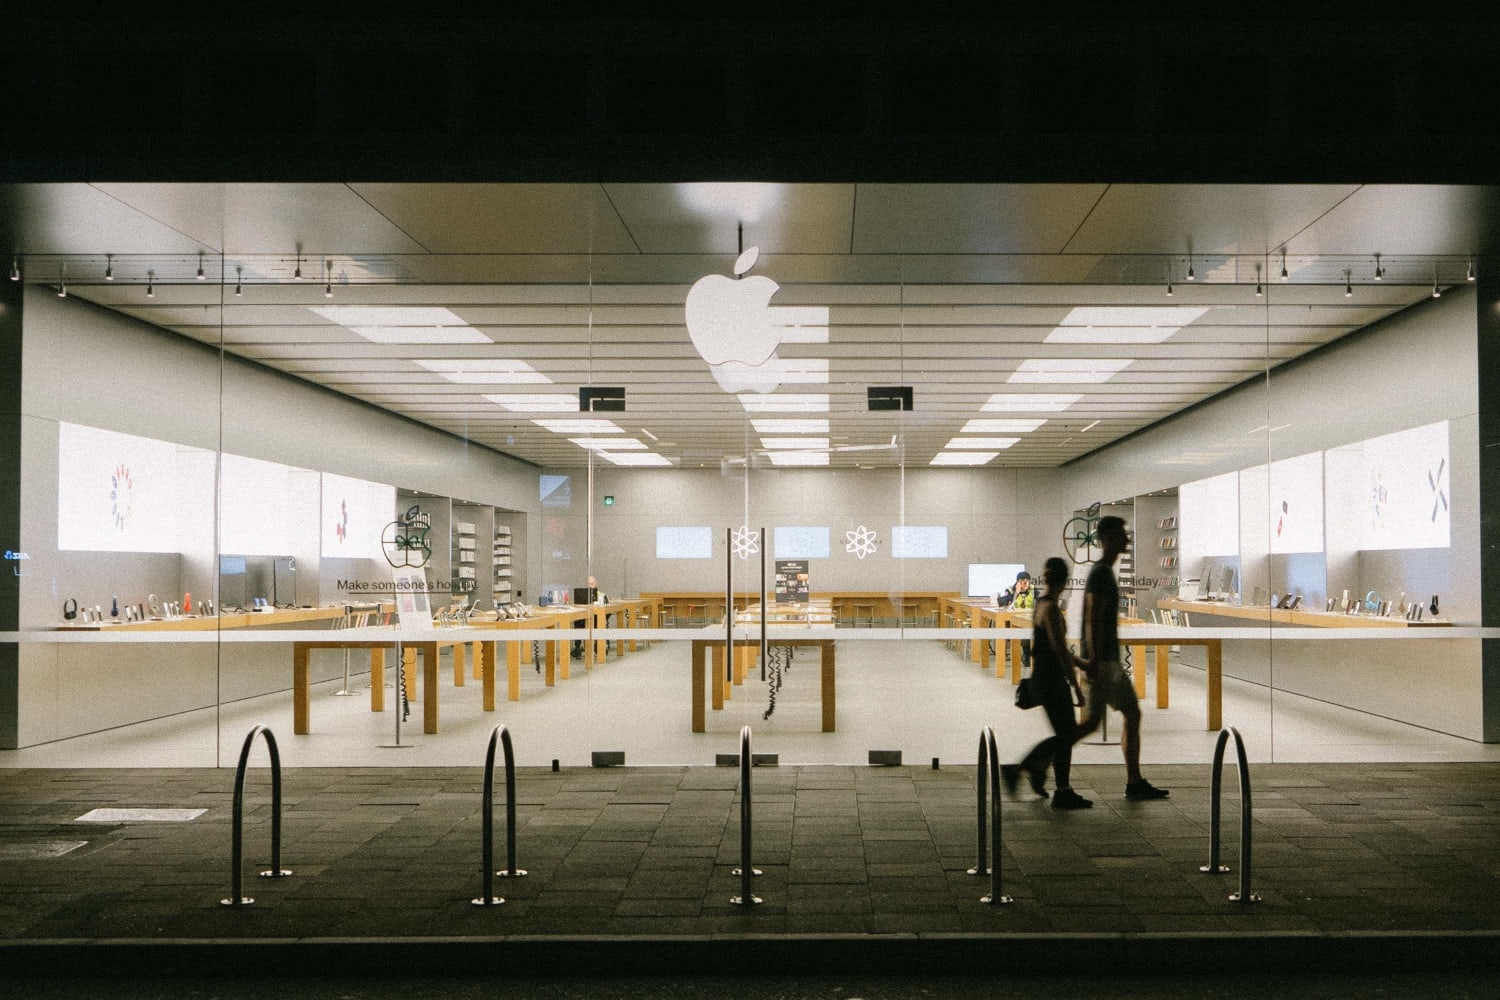 us-apple-stores-offer-express-storefronts-and-quick-pick-up-20201130-1